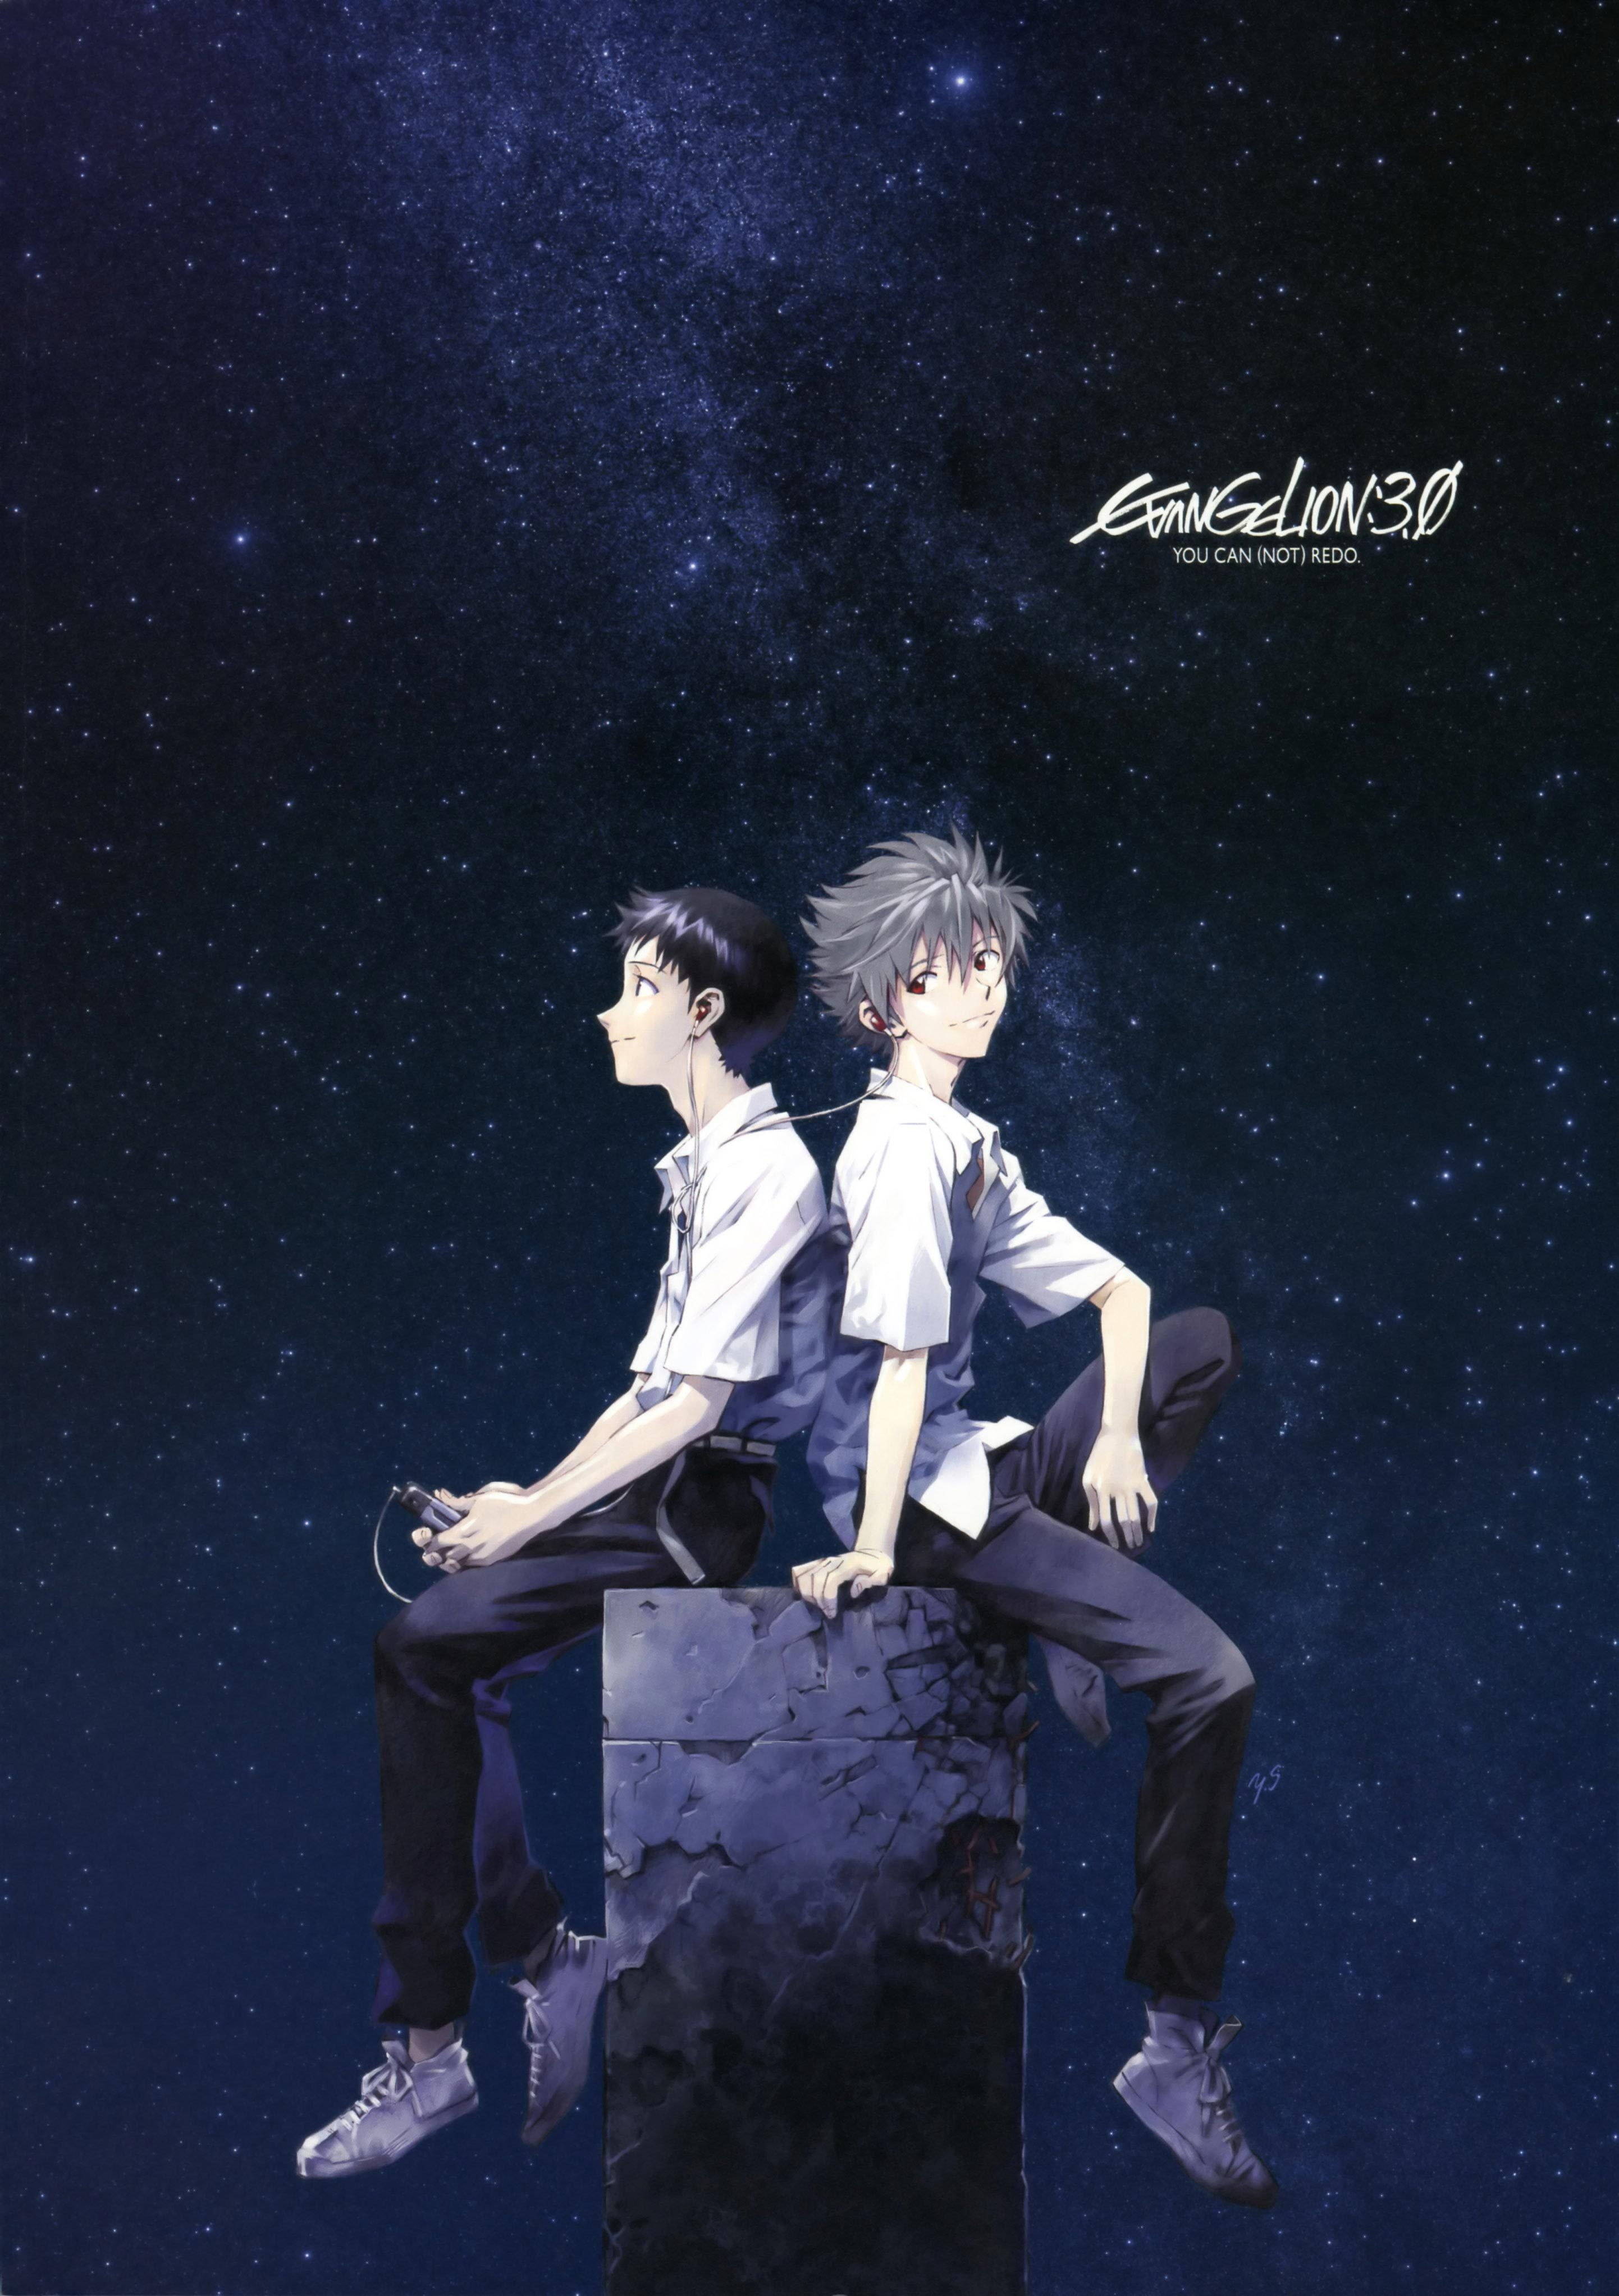 Evangelion 3.0 : You Can (Not) Redo - Long-métrage d'animation (2012) streaming VF gratuit complet